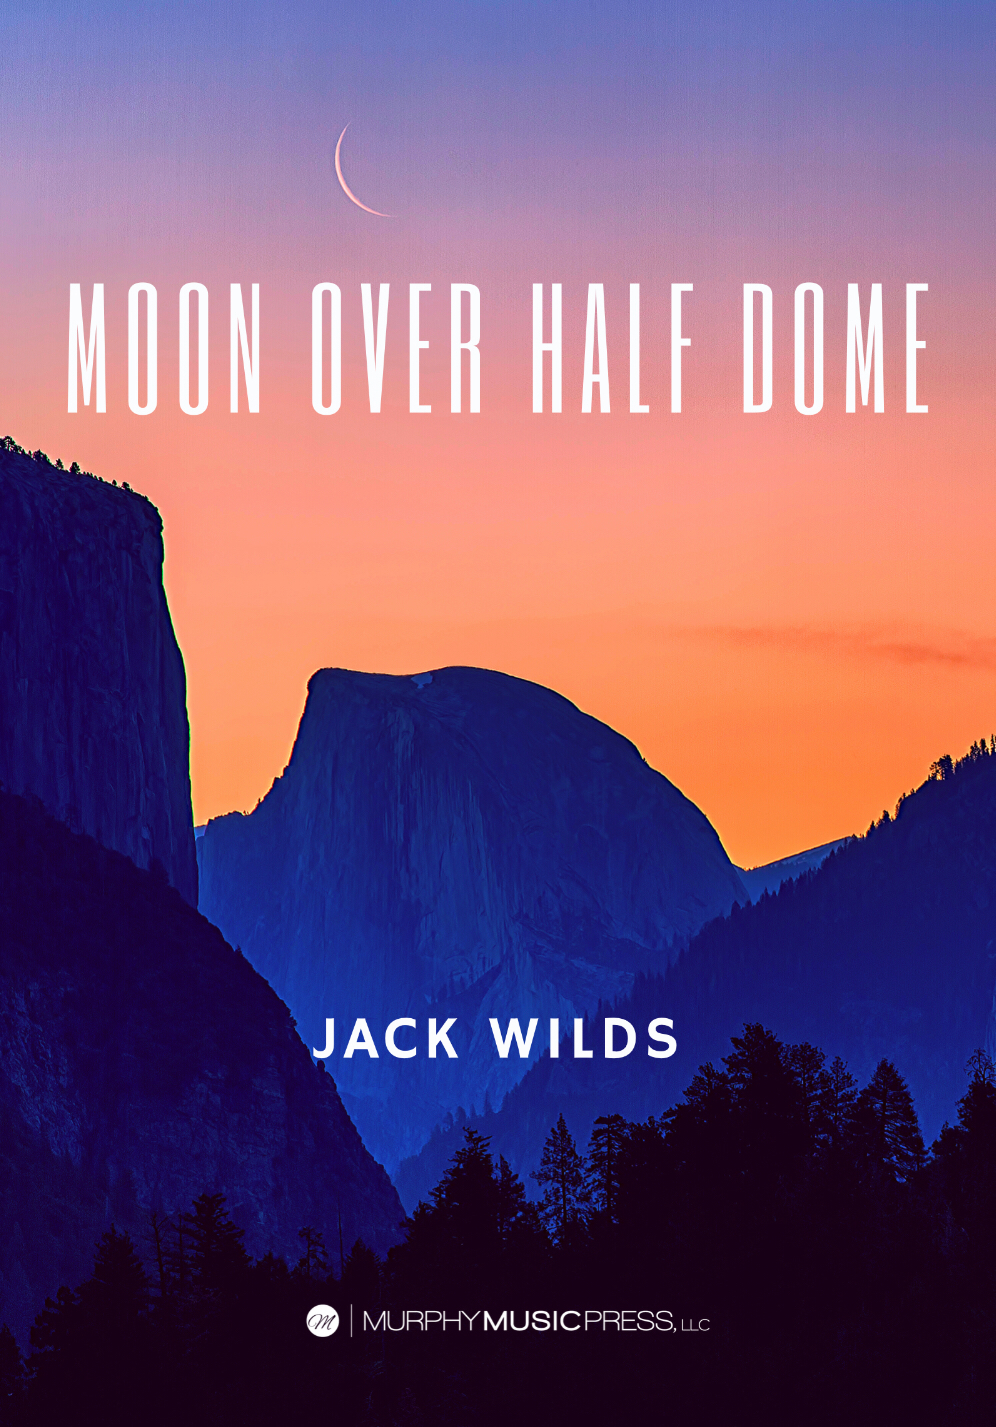 Moon Over Half Dome by Jack Wilds